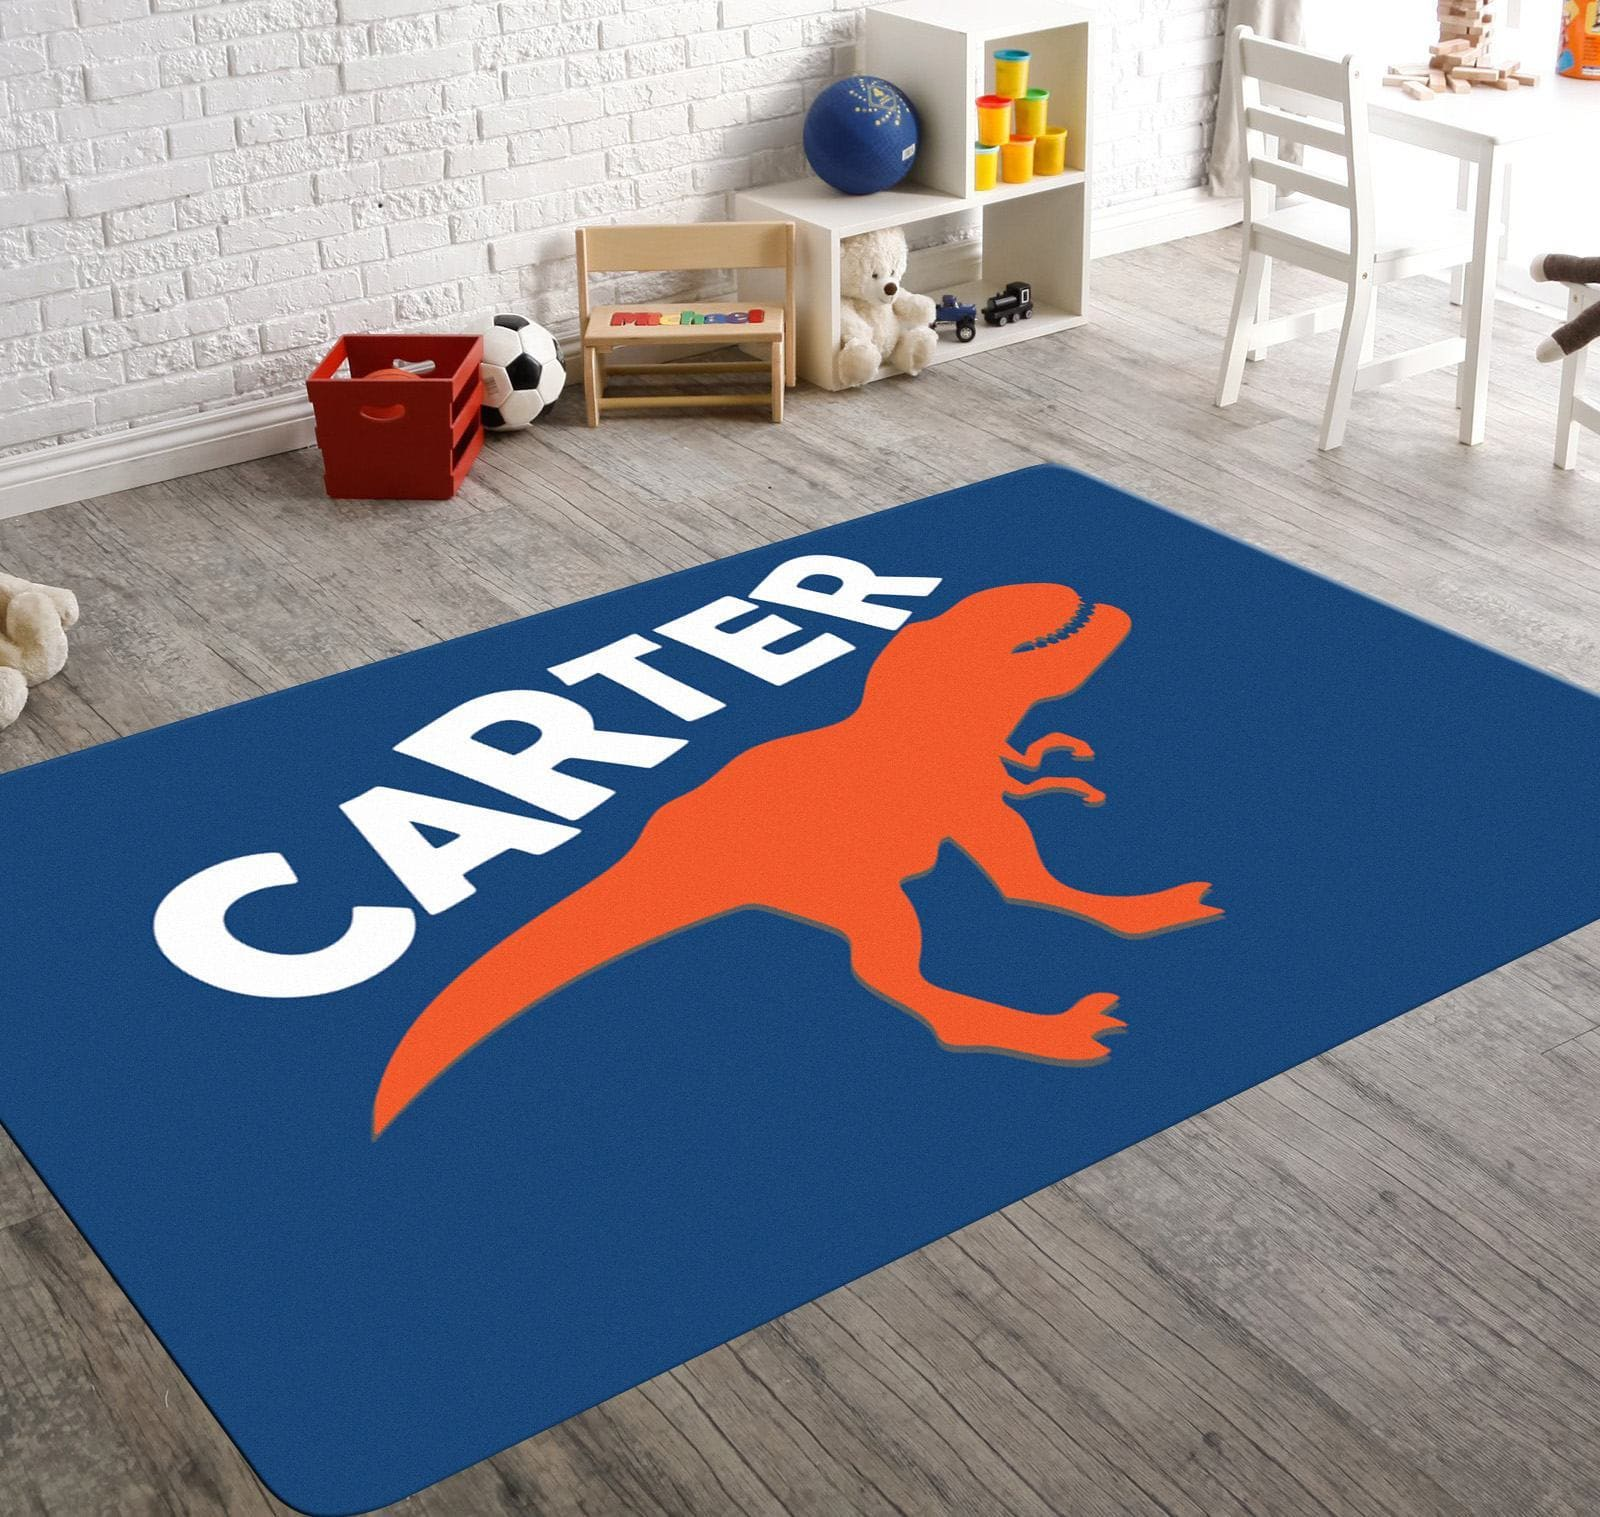 A blue customized rug with an orange dino silhouette screaming your child's name, will add that jurassic element to your boy's playroom or bedroom. Let the contrasting color scheme of this rug add another dimension to your child's playroom or bedroom decor.